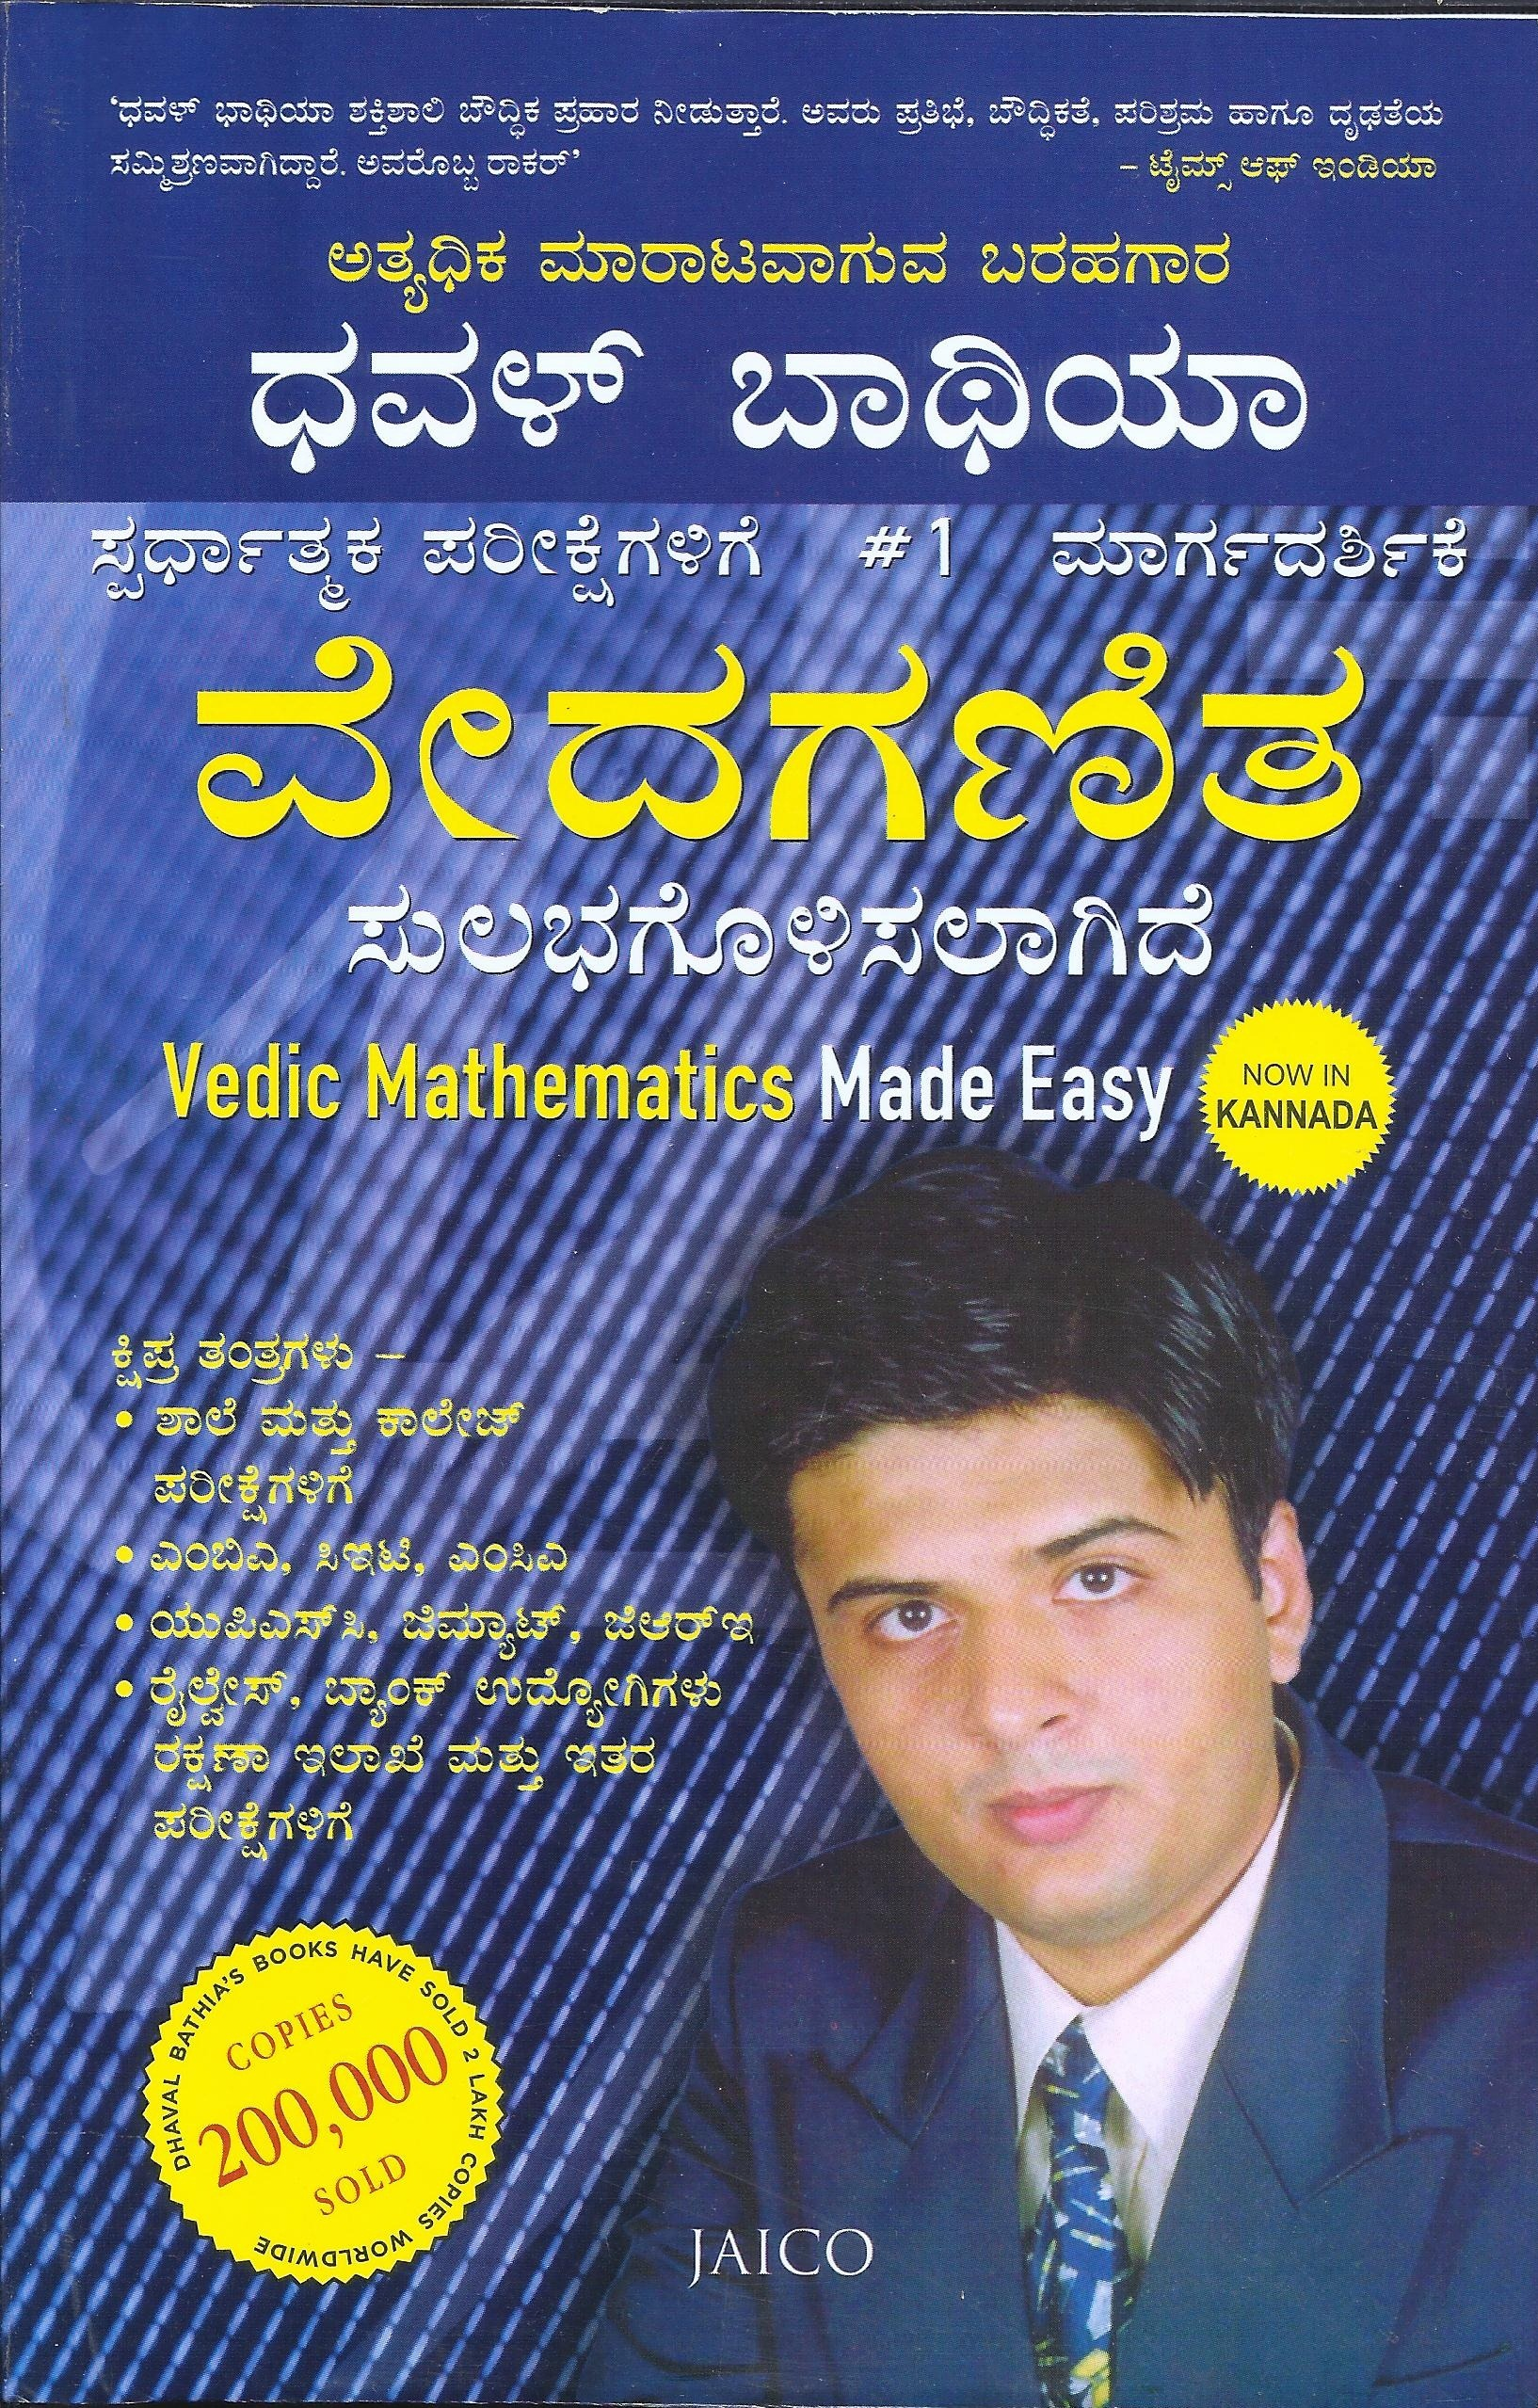 Vedic Mathematics Made Easy In Kannada Language